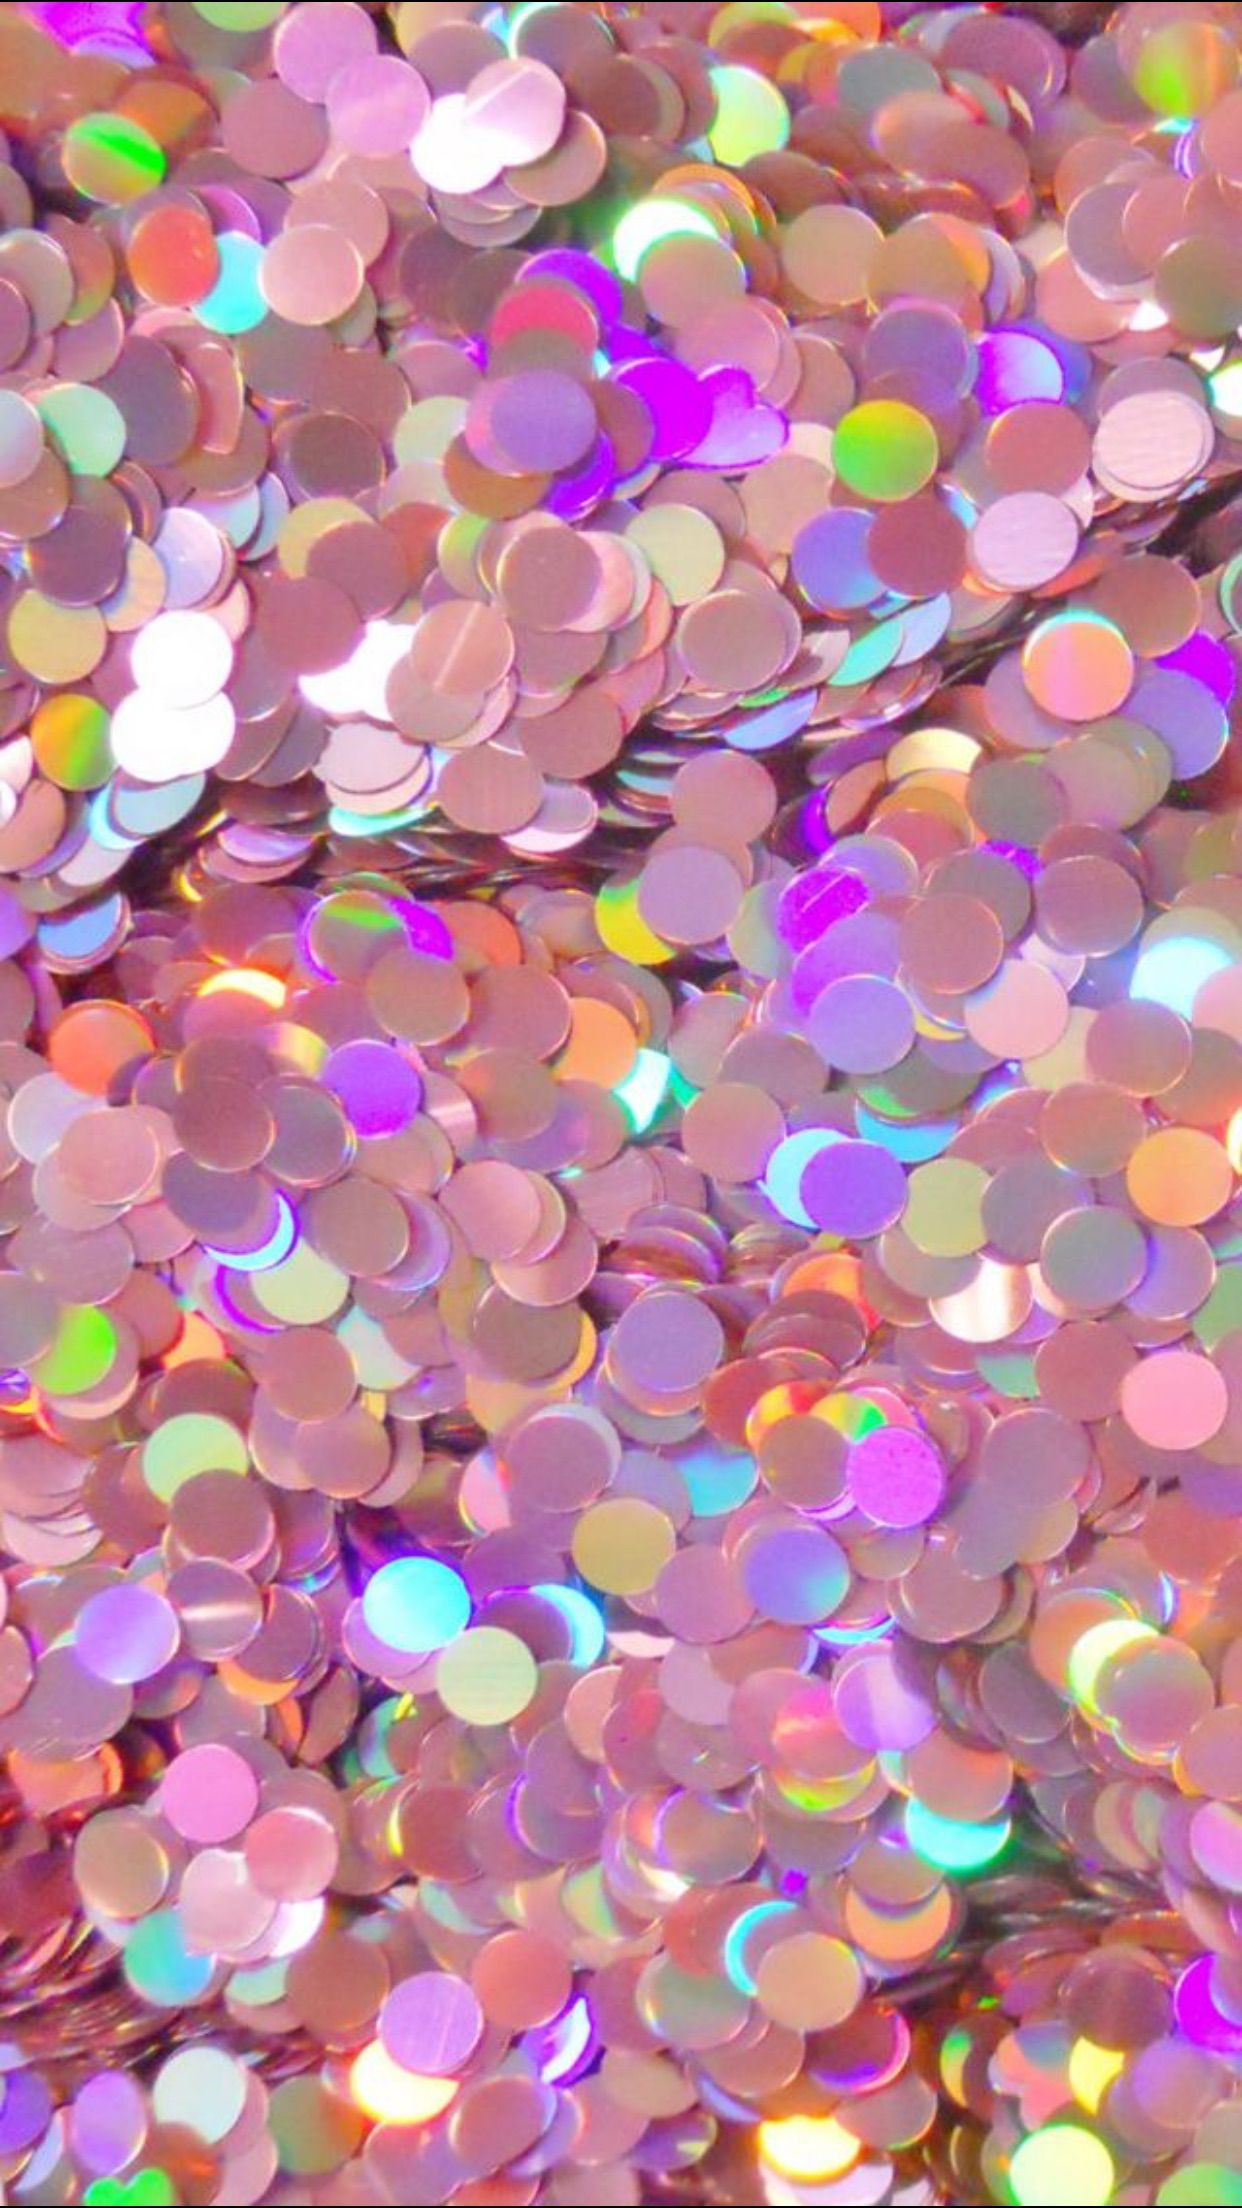 31616fcaa5e Glitter iPhone 5 Wallpapers - Top Free Glitter iPhone 5 Backgrounds ...